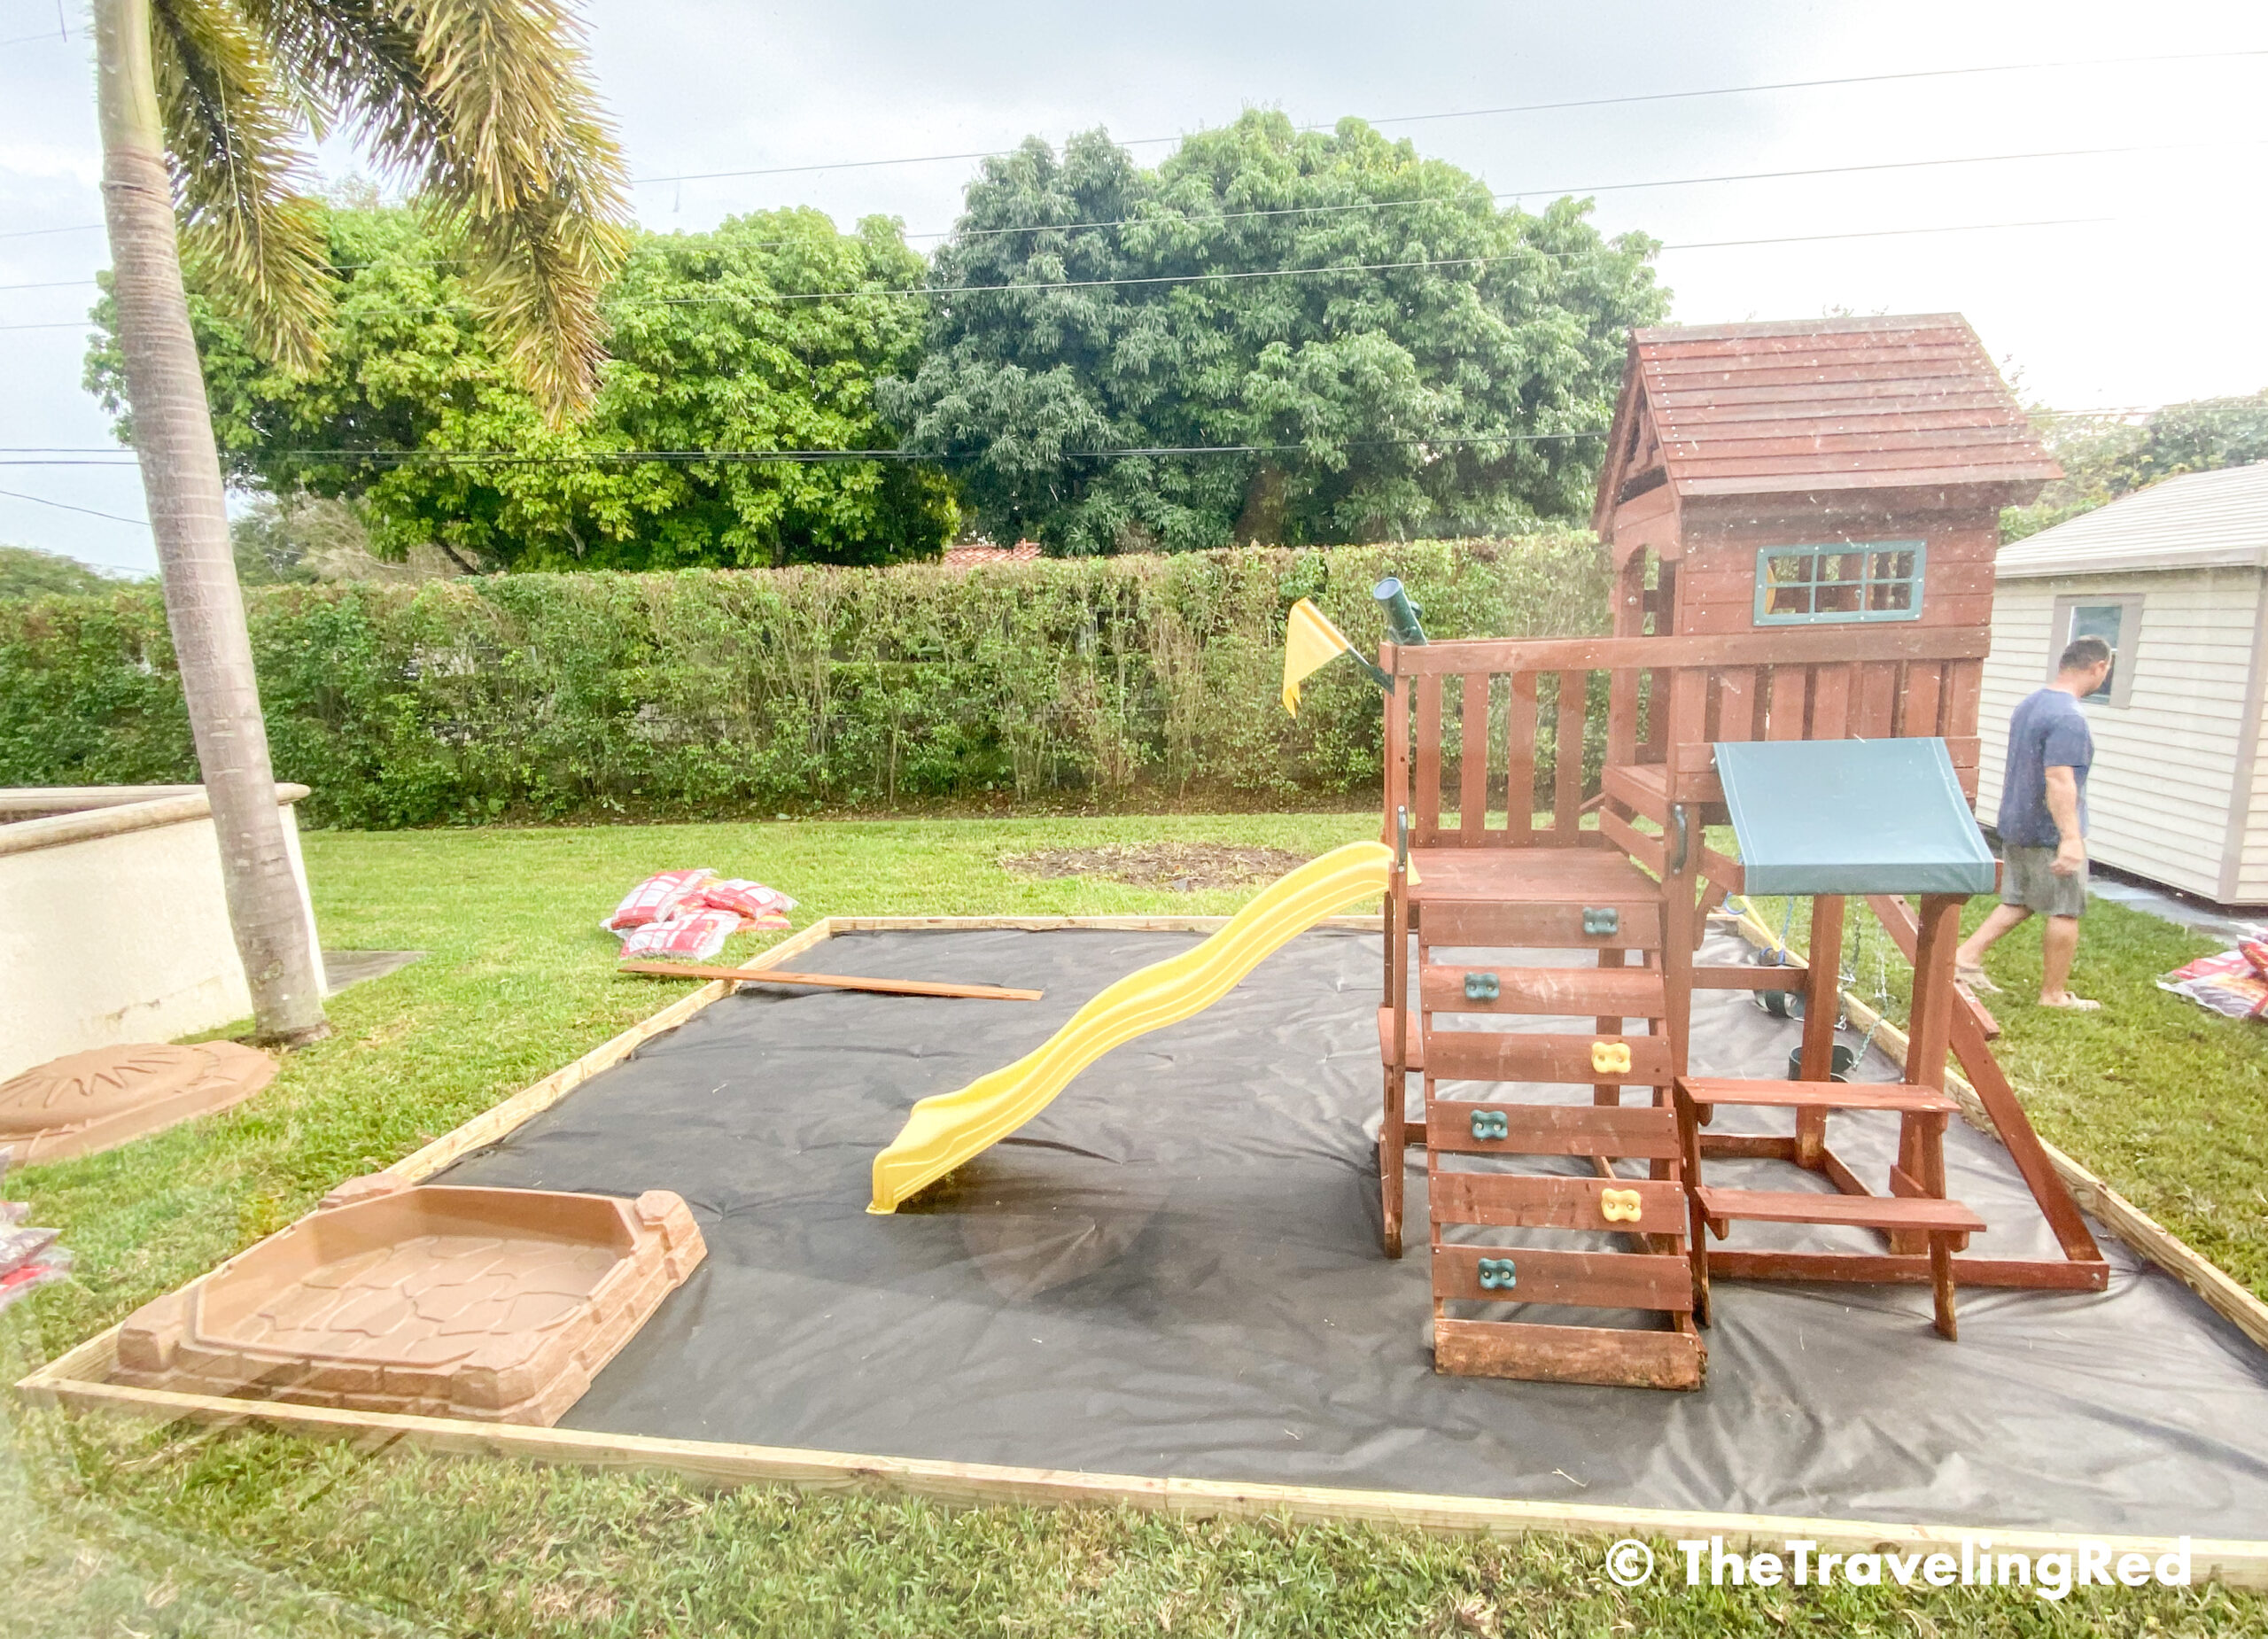 How to build a custom backyard playground with rubber mulch. Step 5 is to figure out the placement of the outdoor toys and adjust as needed. This space will fit our swingset, playhouse, sandbox or any other outdoor toys you plan to include. Perfect little outdoor play space for your kids to enjoy playing outside.